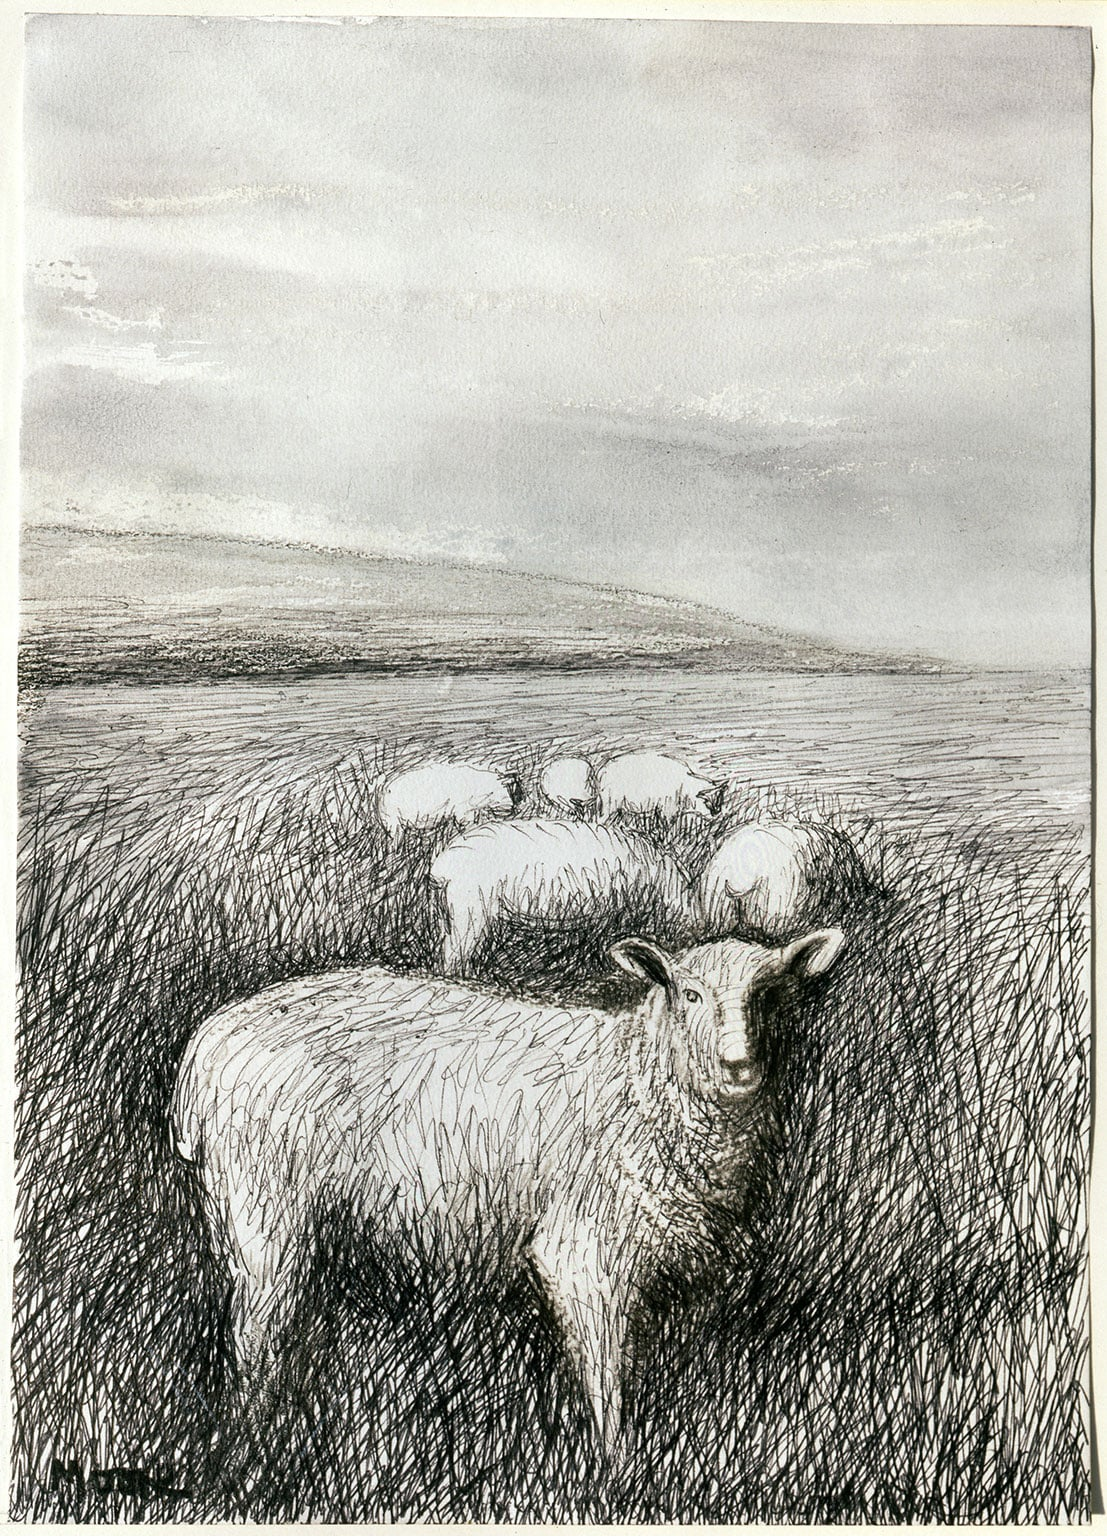 Henry Moore: From Paper to Bronze, Waddesdon - Henry Moore, Sheep Grazing in Long Grass I, 1981 Photo: Brian Coxall, The Henry Moore Foundation archive. Reproduced by permission of The Henry Moore Foundation